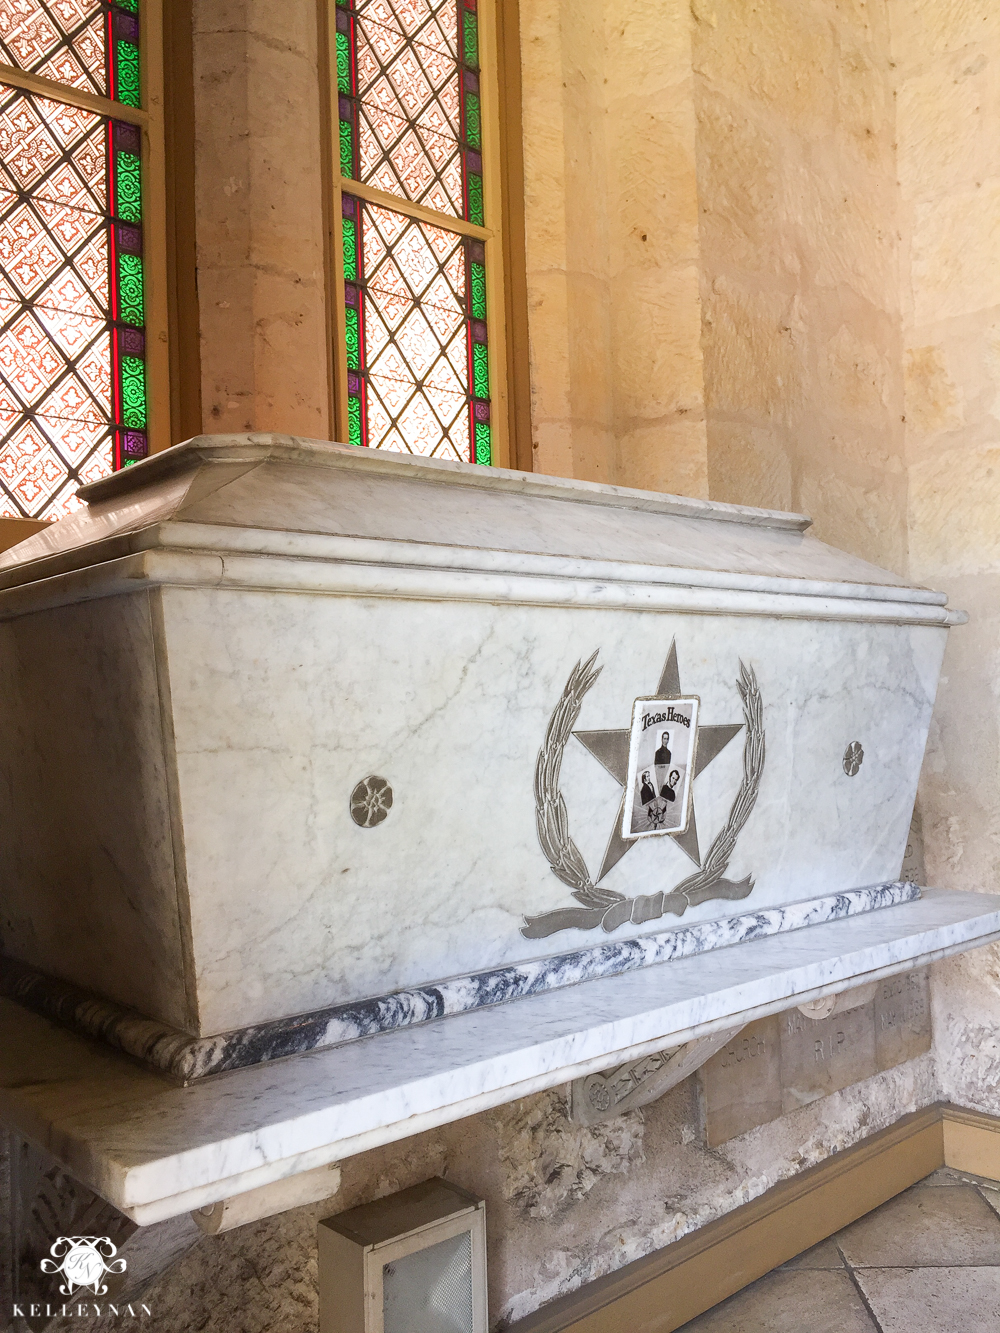 Texas Trip and San Antonio Fiesta Week-Alamo Tomb at San Fernando Cathedral